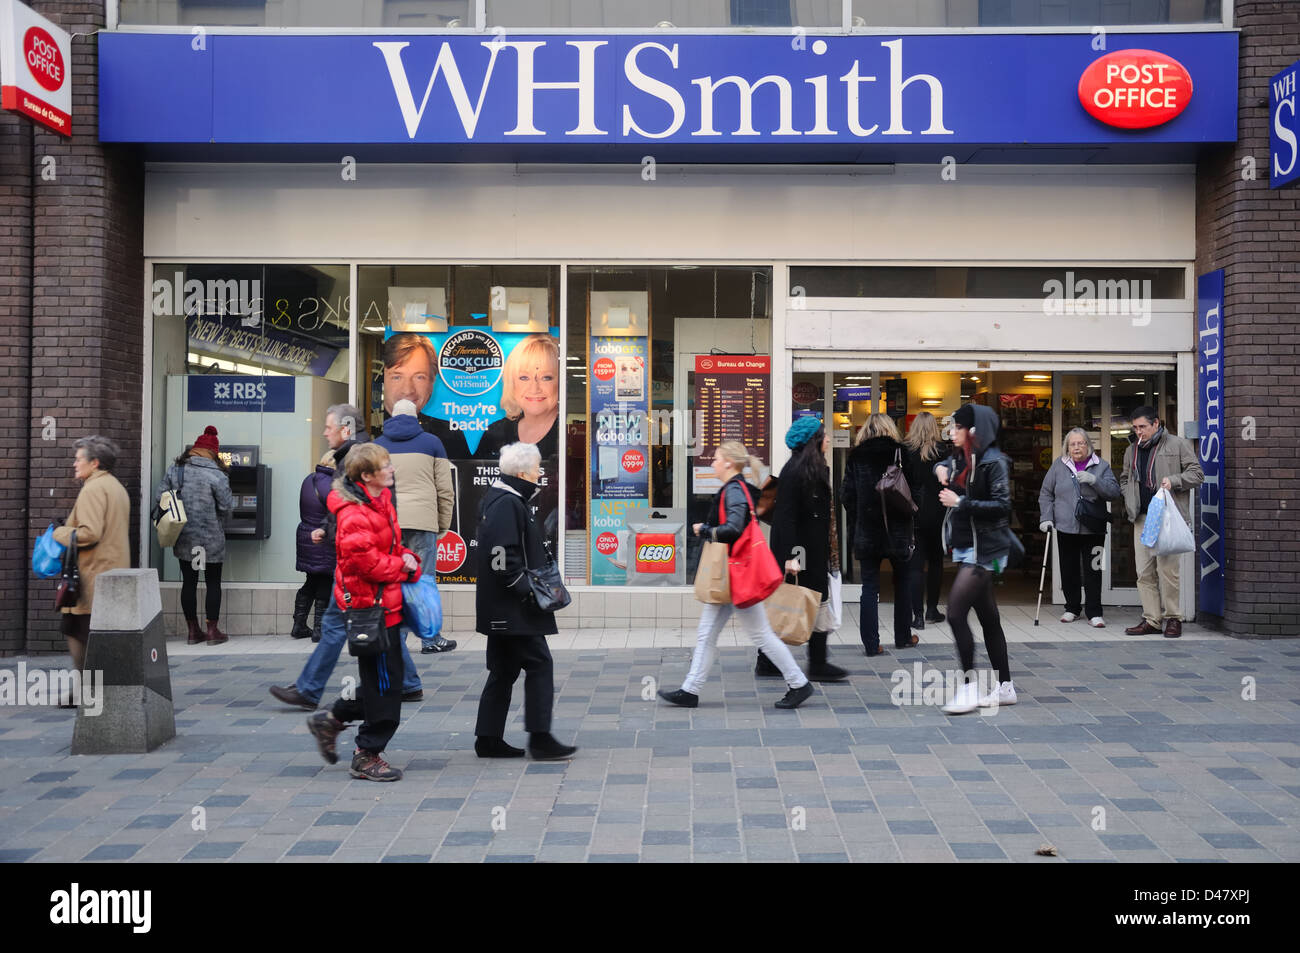 WH Smith newsagent and post office in Glasgow, Scotland, UK - Stock Image